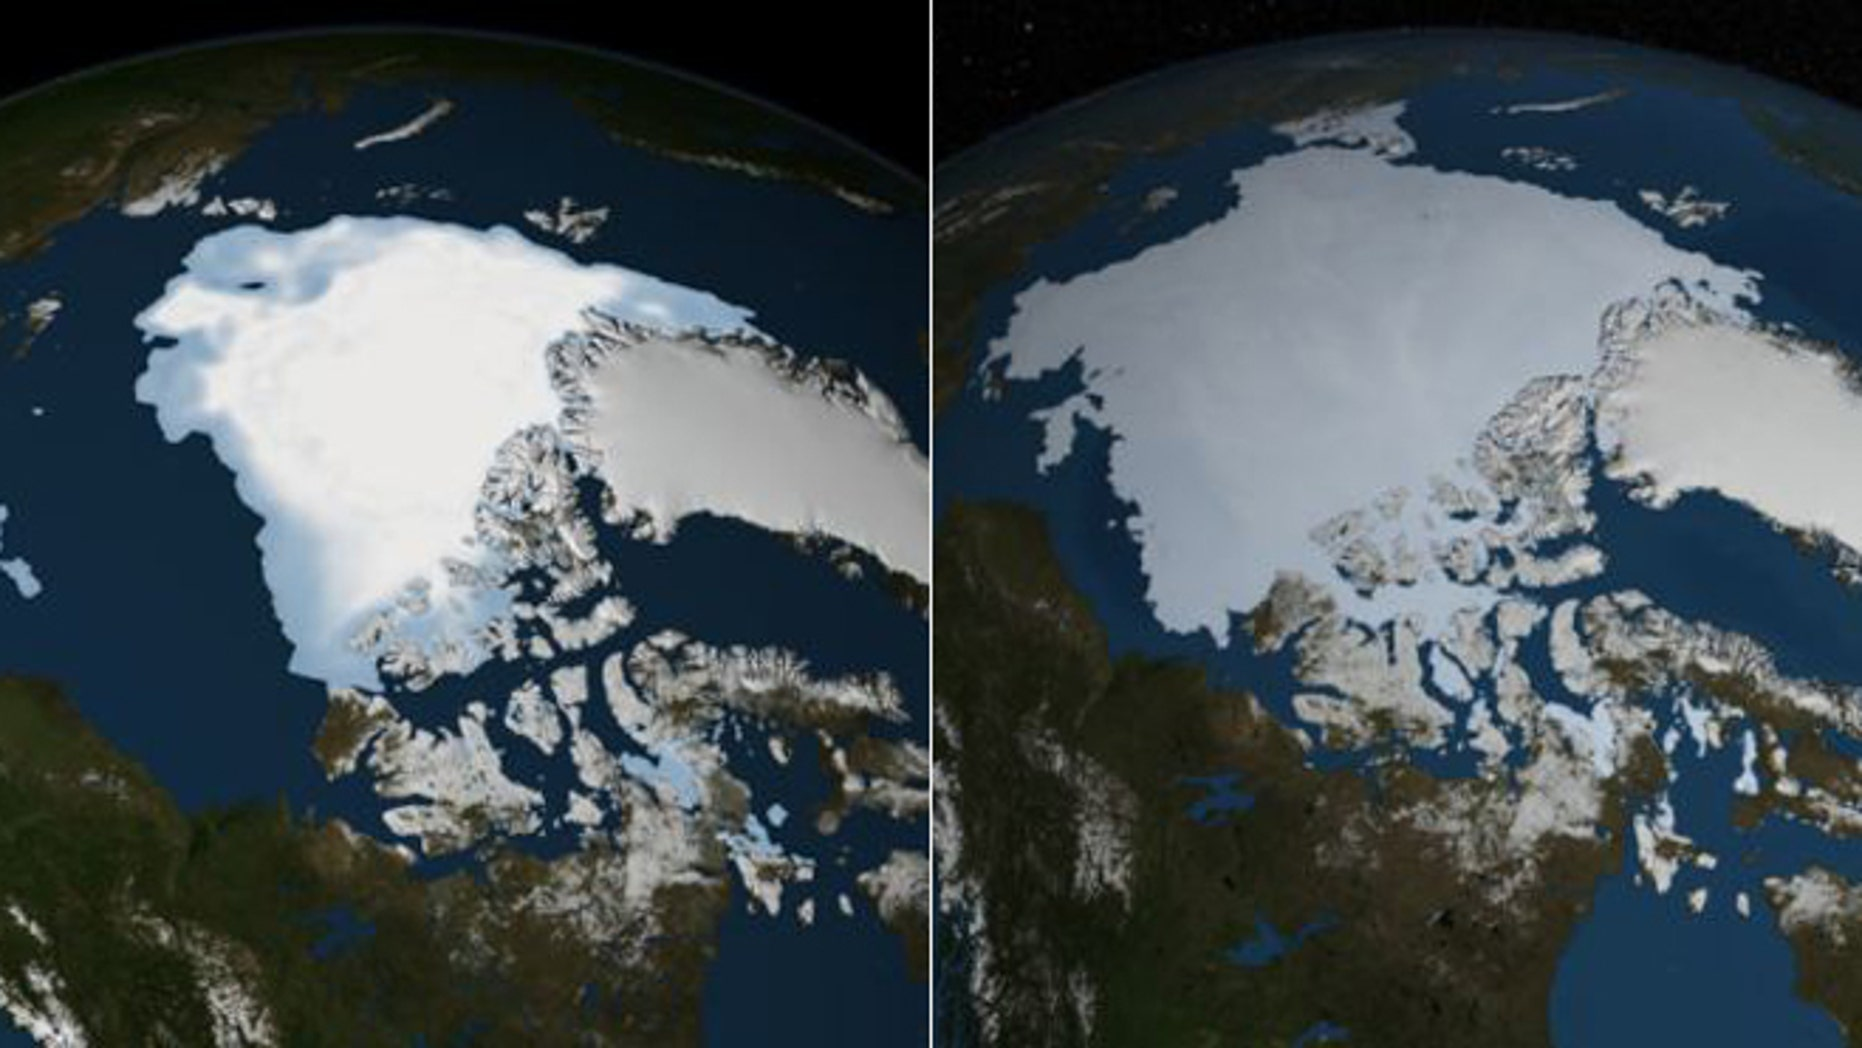 NASA satelite images show the changing Artic sea ice coverage. from August 2012 (left) to August 2013 (right) -- a growth of about a million square miles.